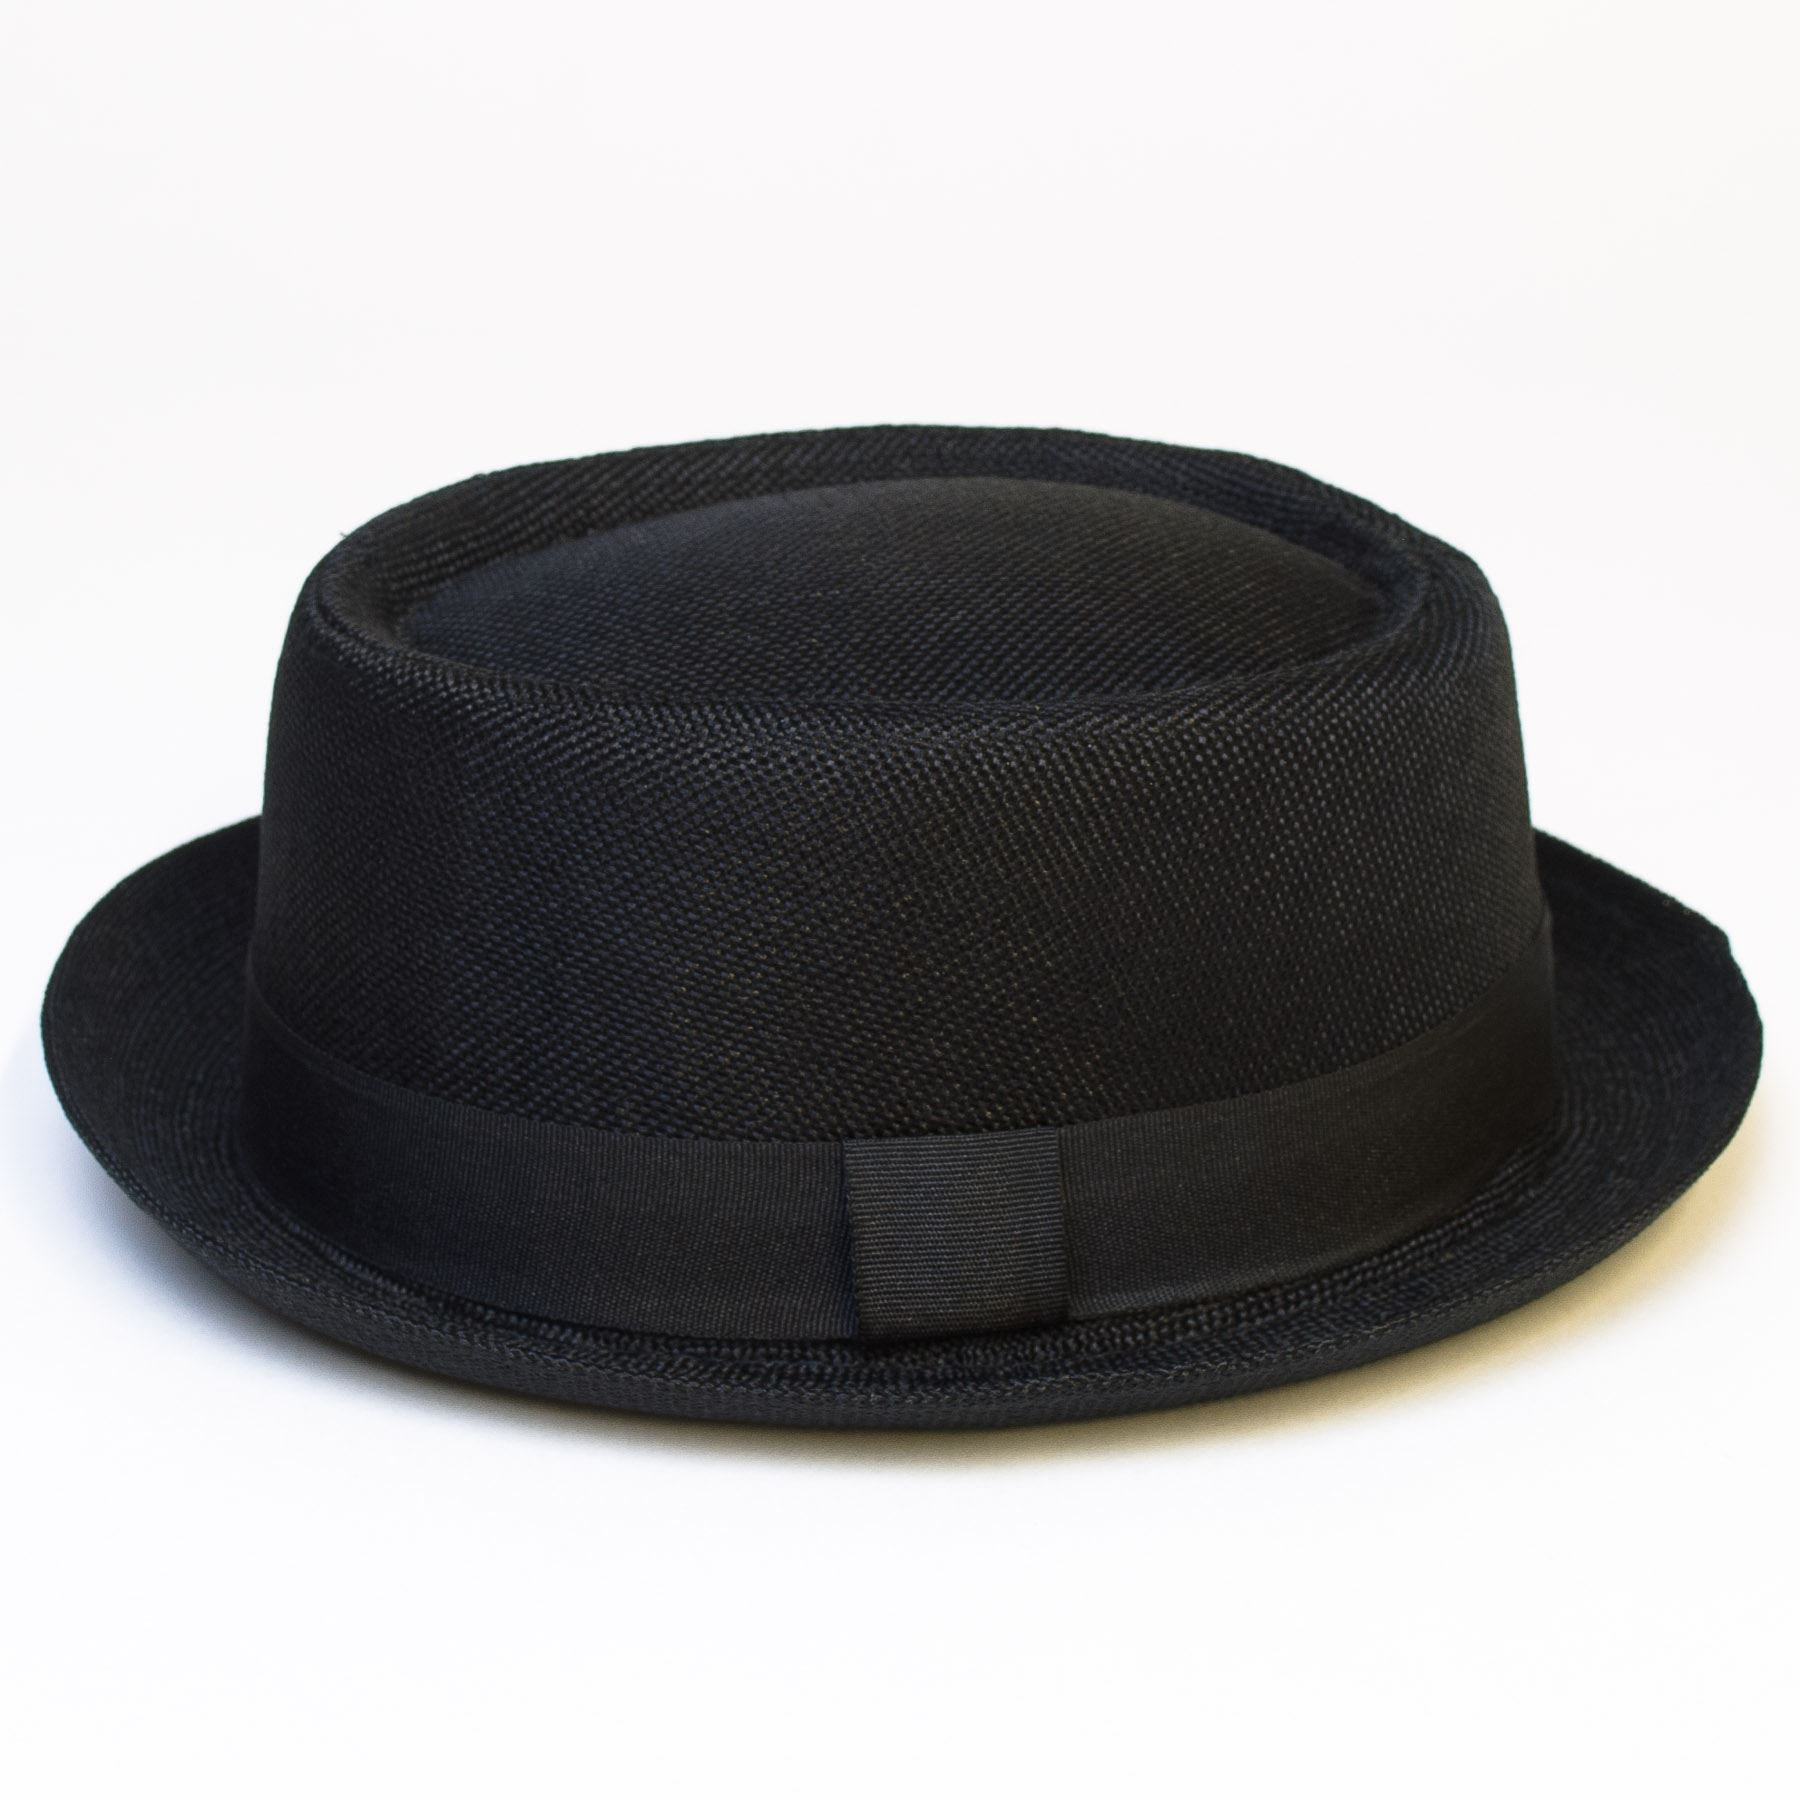 Pork-Pie-Hat-with-Black-Grosgrain-Band thumbnail 7